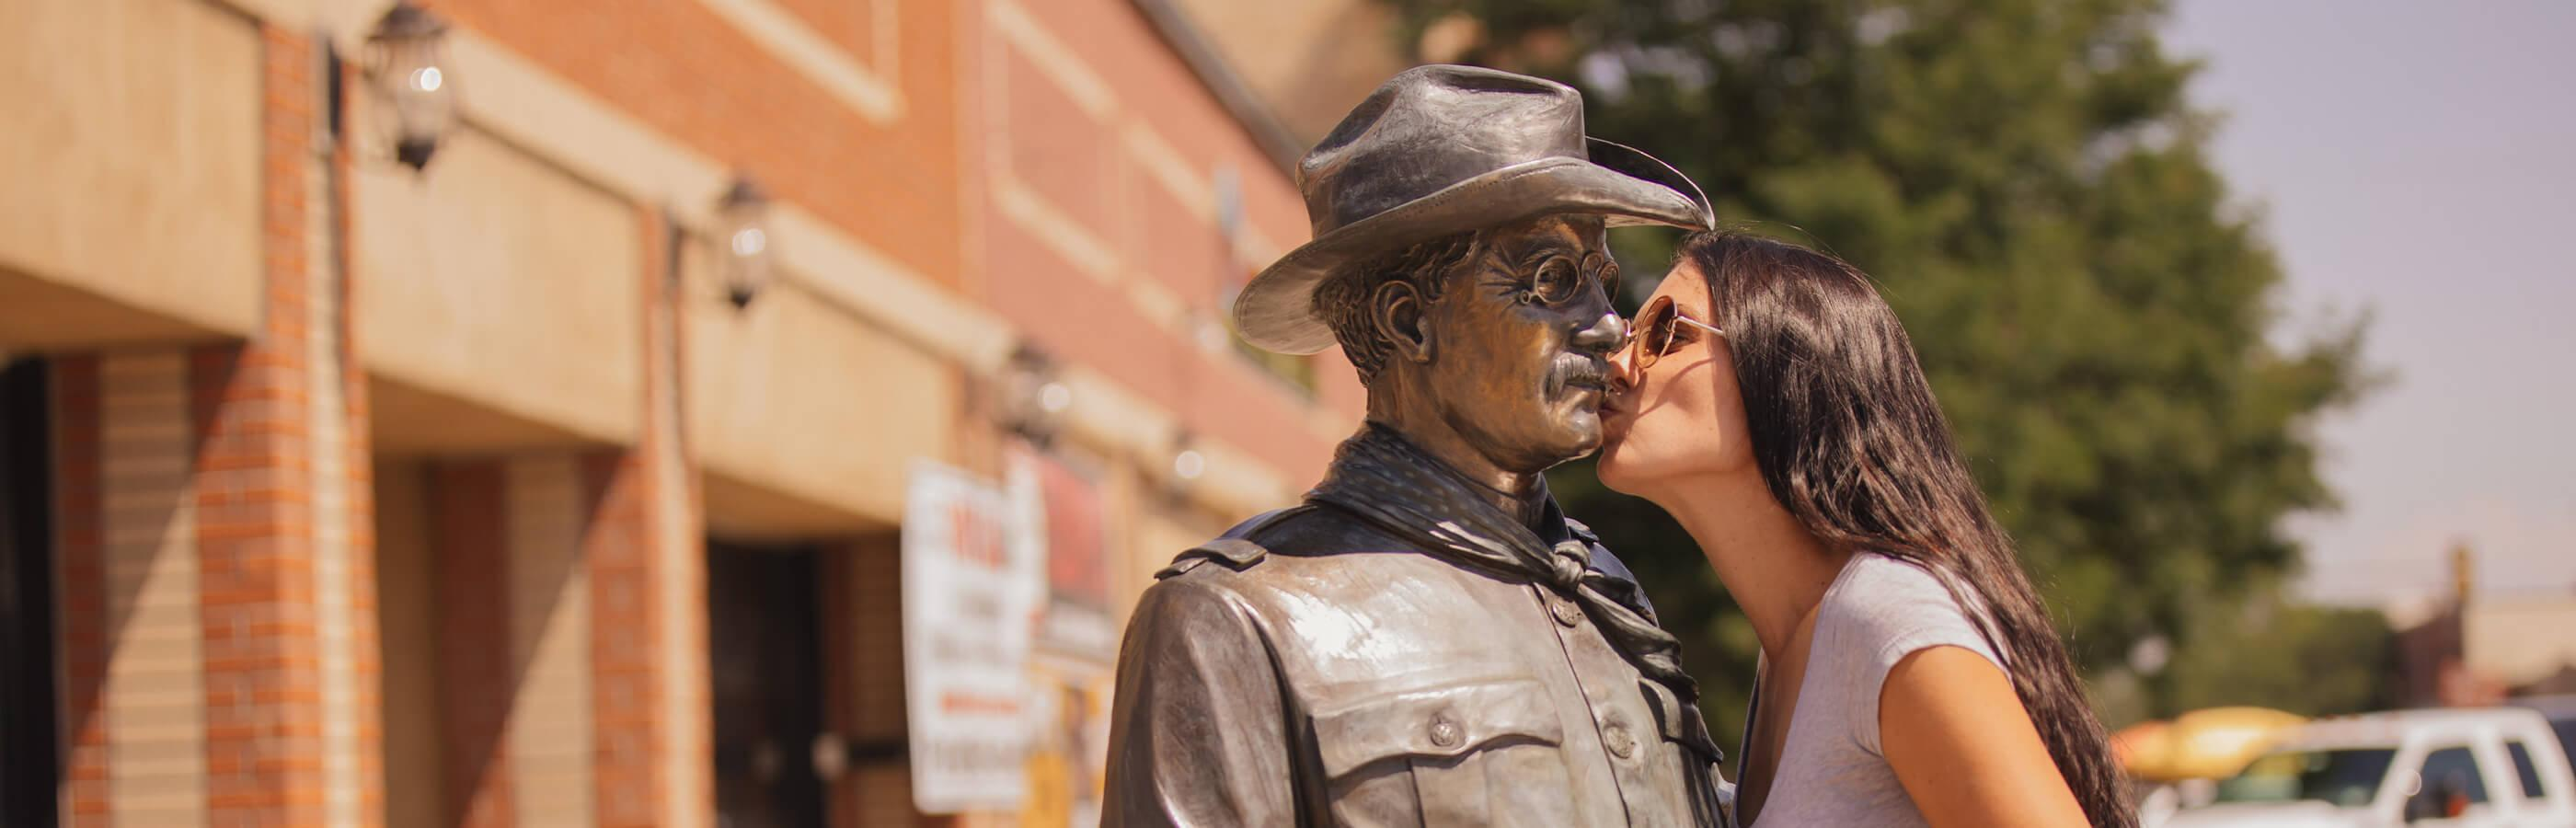 Woman kissing a Teddy Roosevelt statue from the City of Presidents